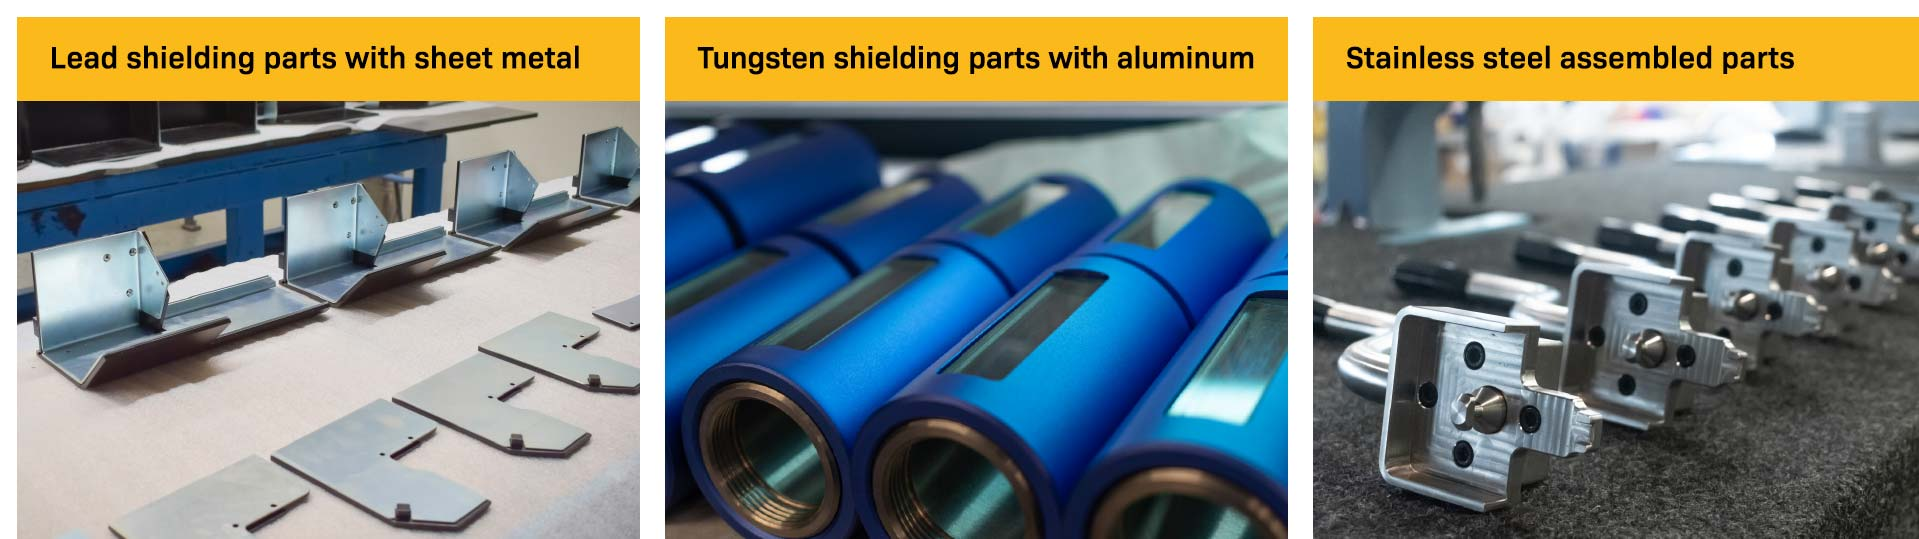 OEM shielding parts manufactured by Nuclear Shields